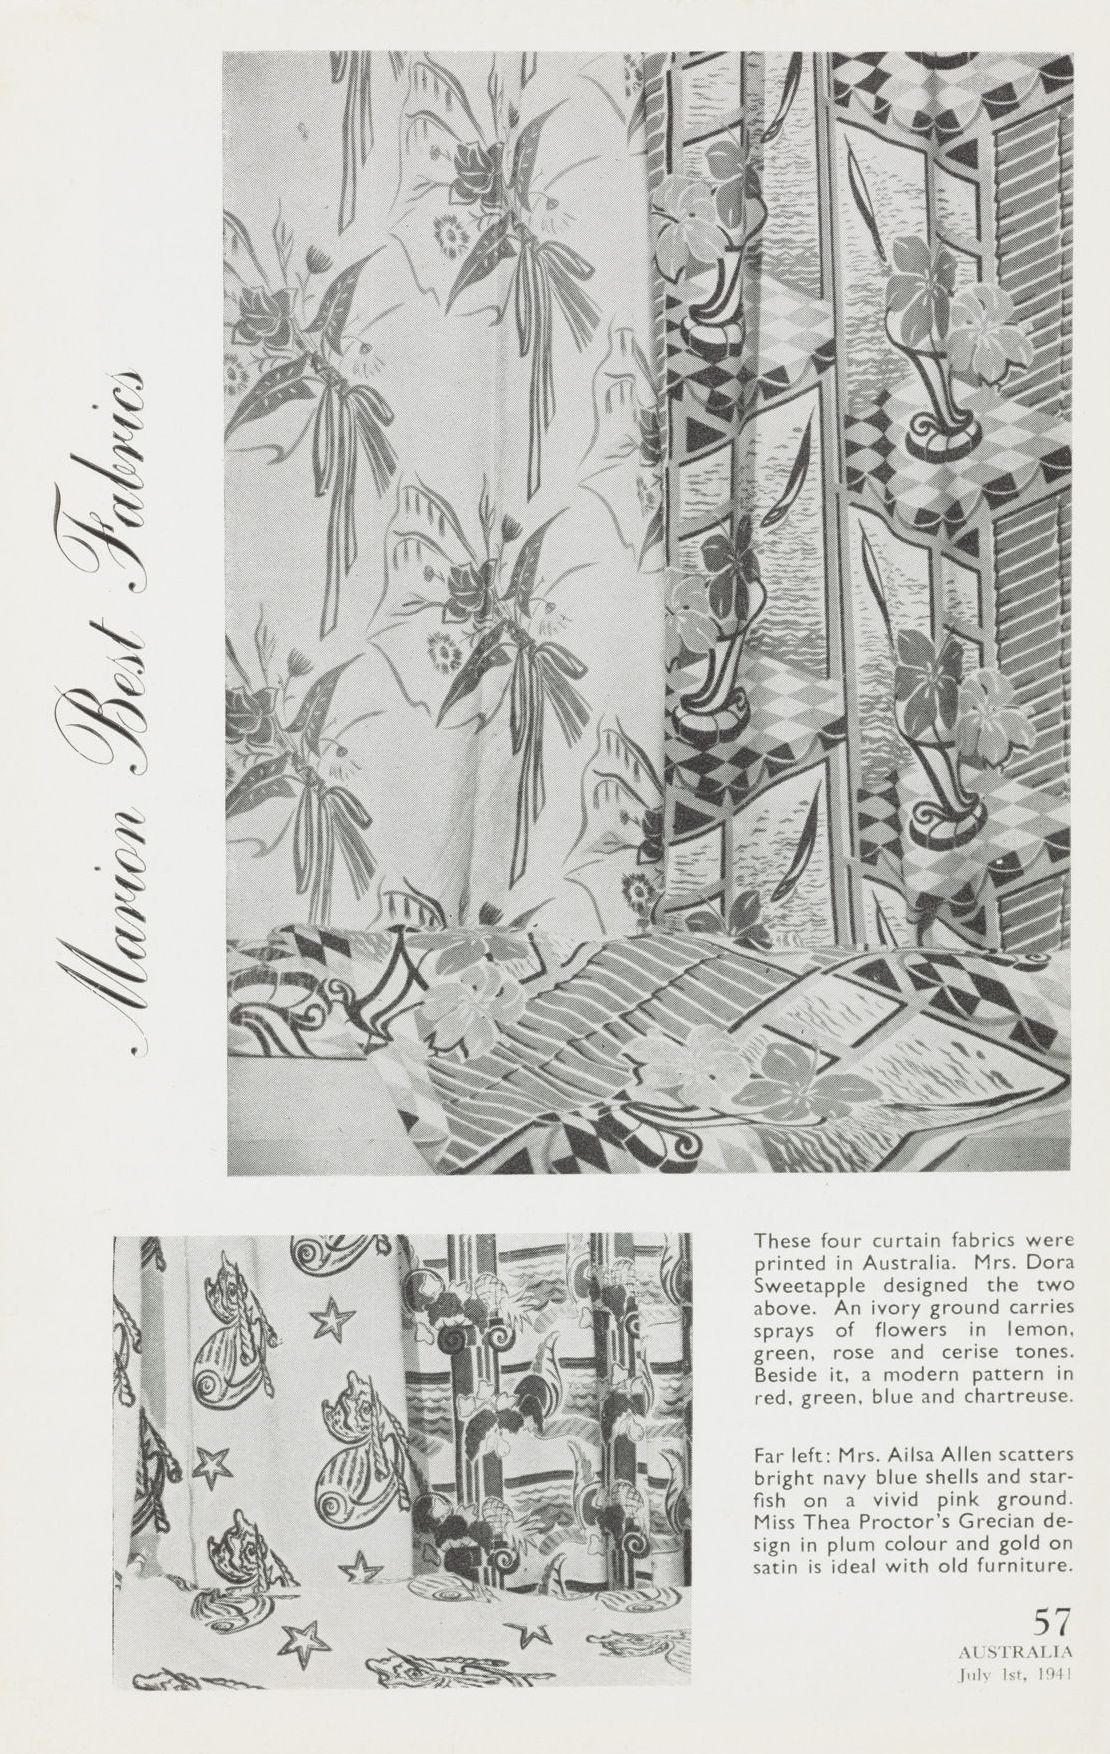 Advertisement for Marion Best Fabrics, July 1941